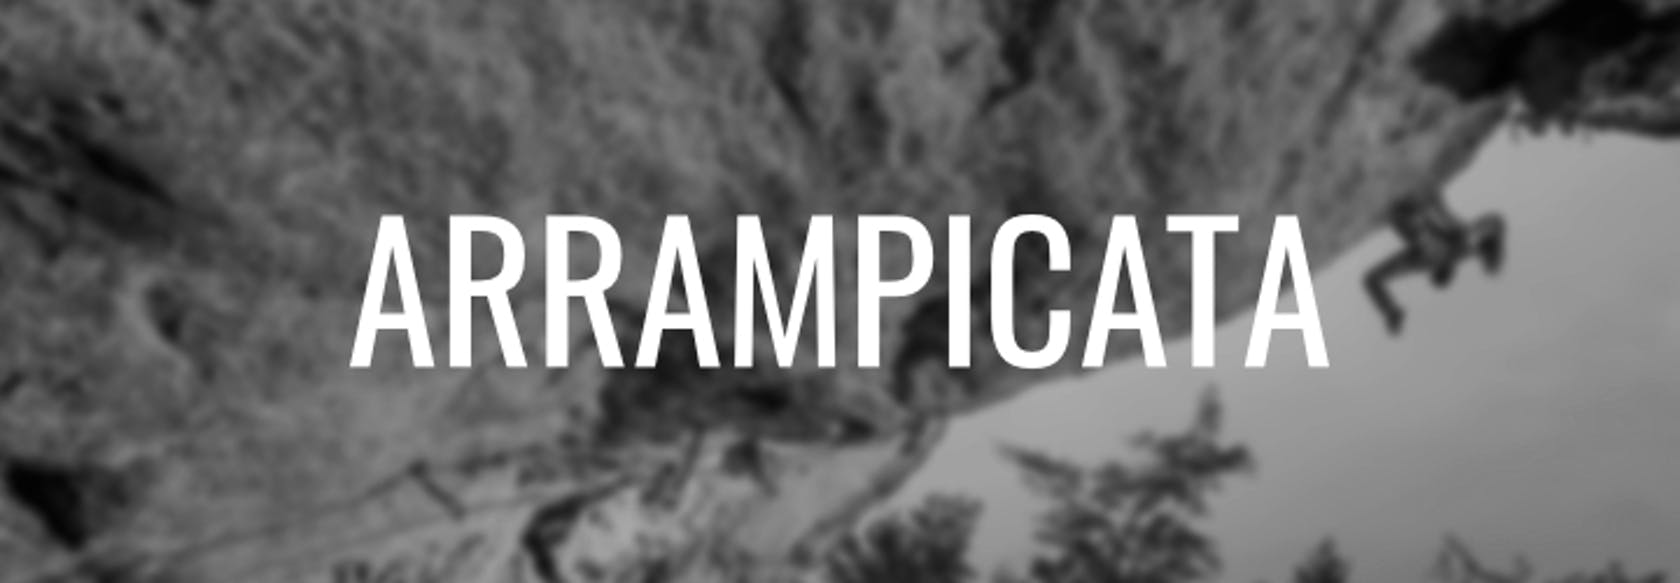 arrampicata shop online